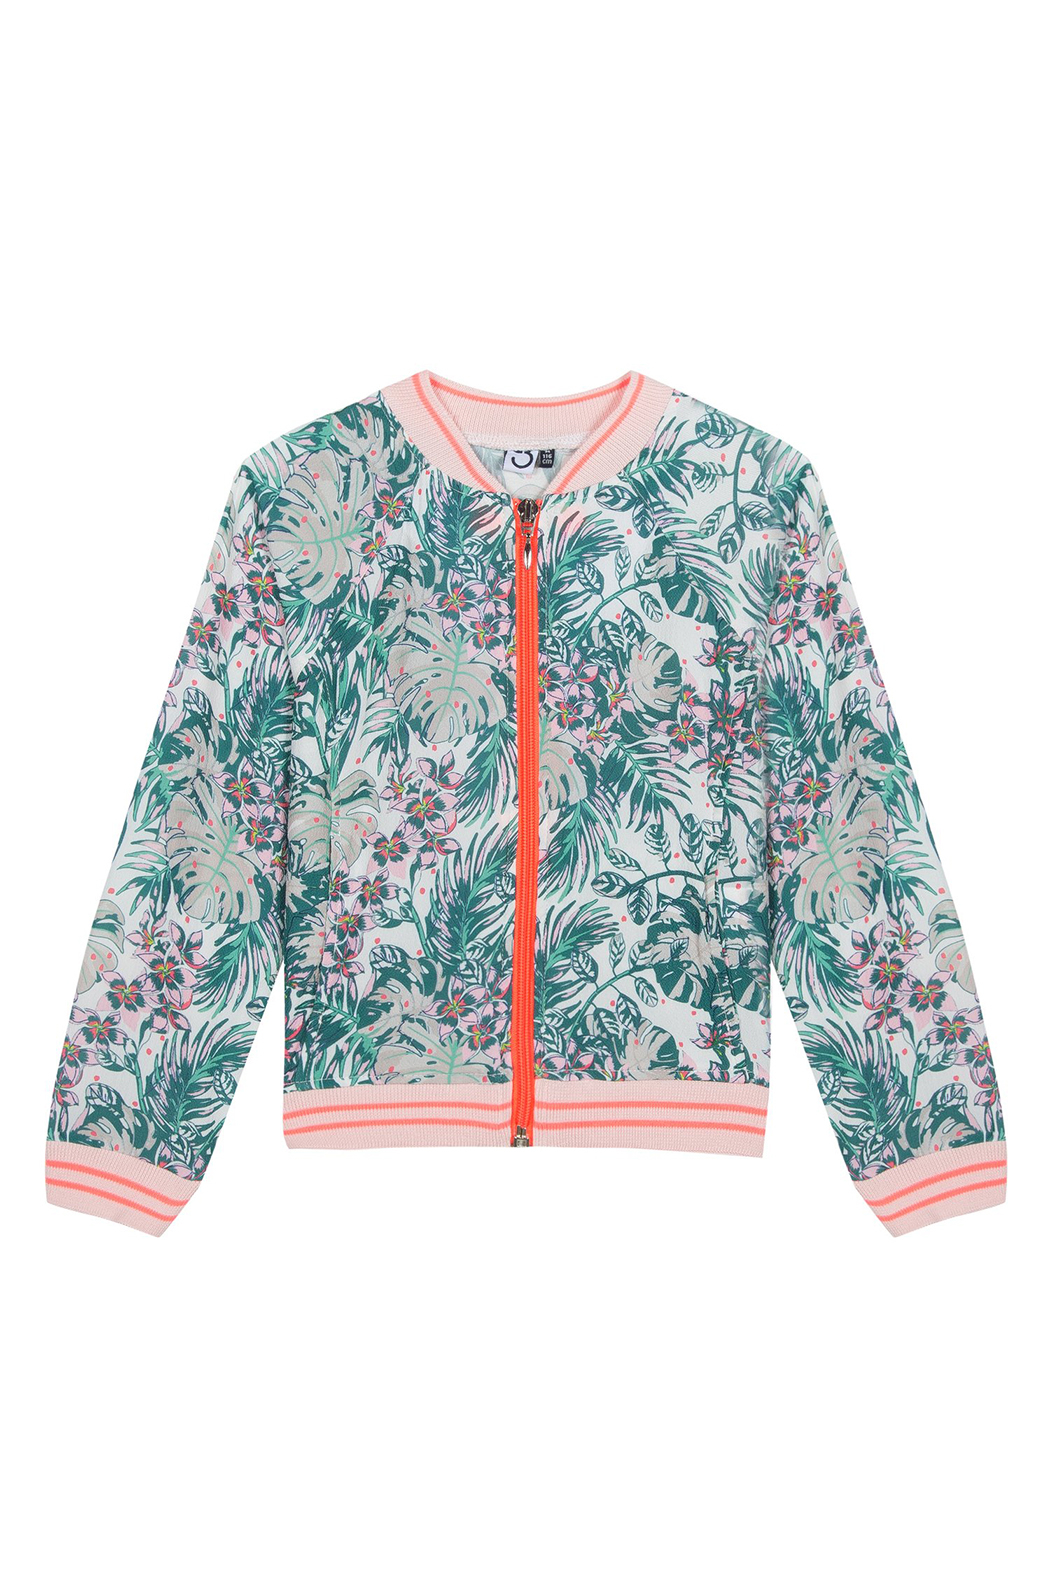 3Pommes Palm Spring Jacket - Main Image